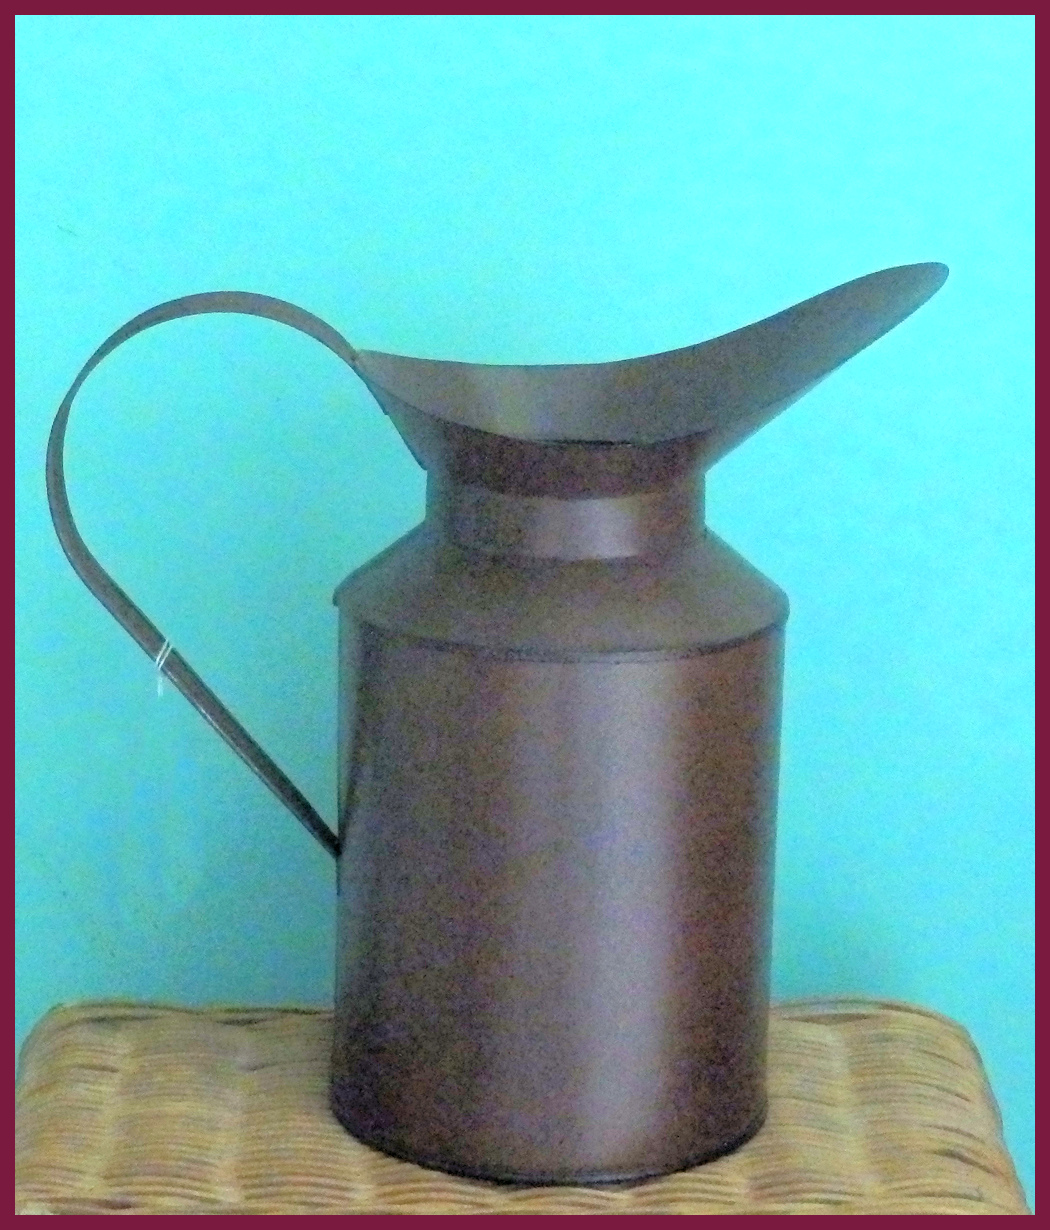 metal-watering-can-rusty-15t220.jpg